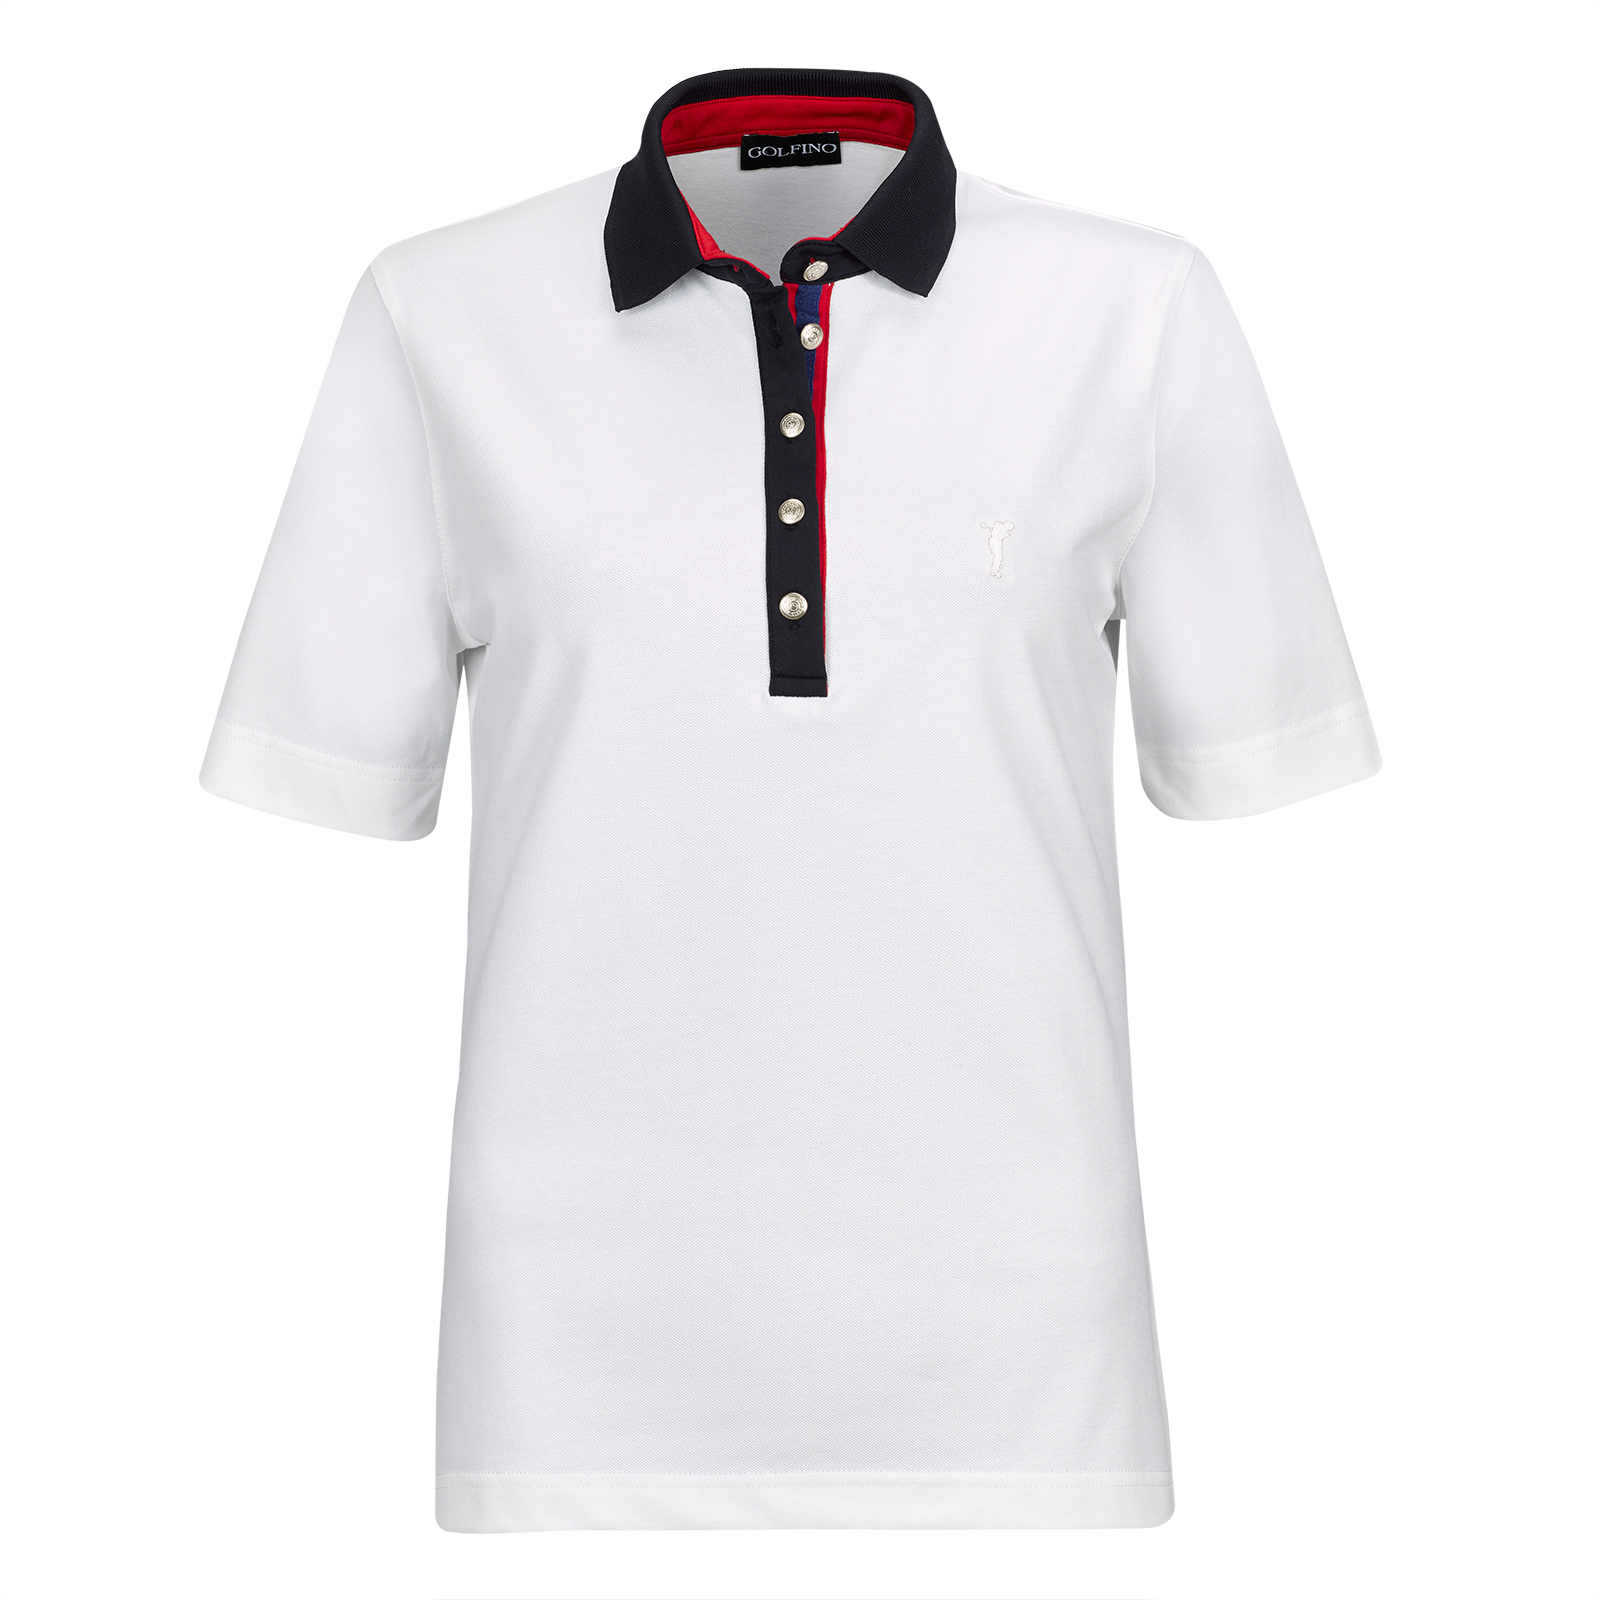 Short-sleeve ladies' cotton golf polo from luxurious stretch material in slim fit